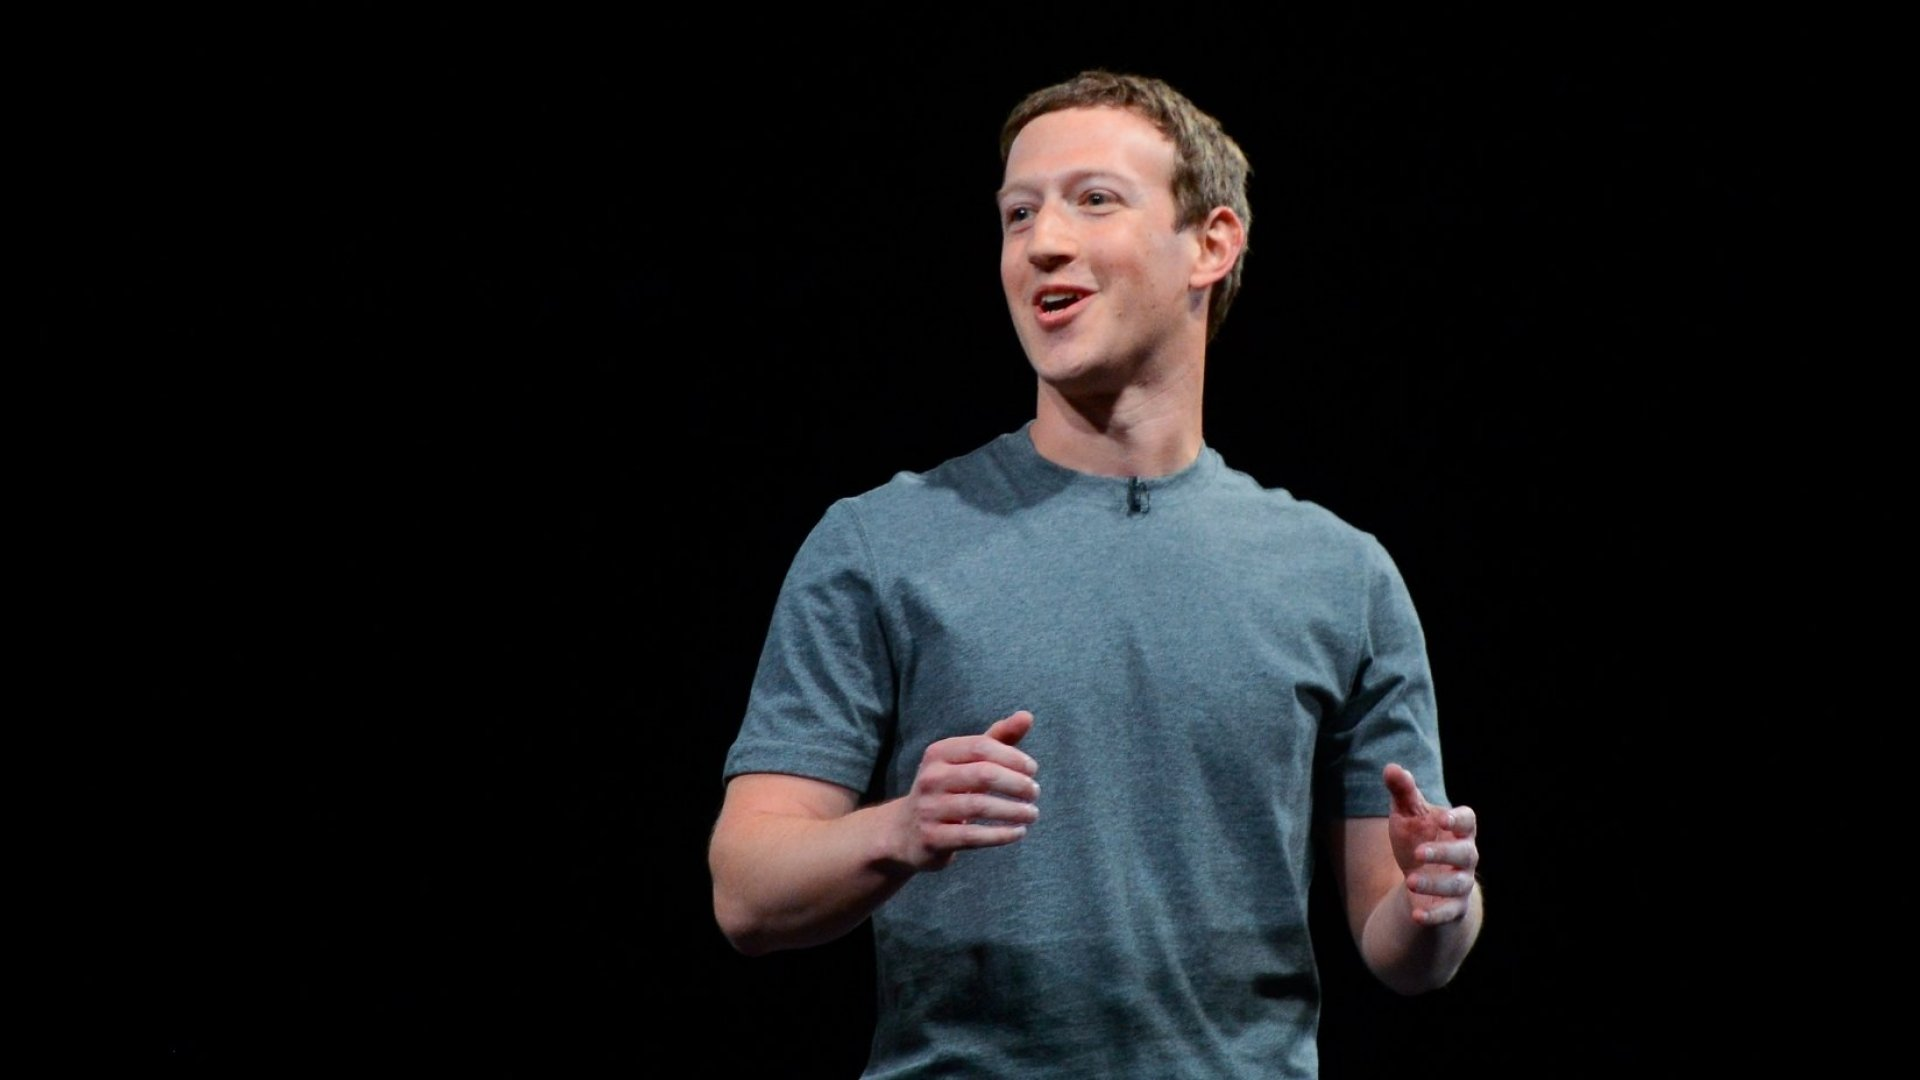 Watch Mark Zuckerberg Encourage Young Entrepreneurship in His First Visit to Nigeria